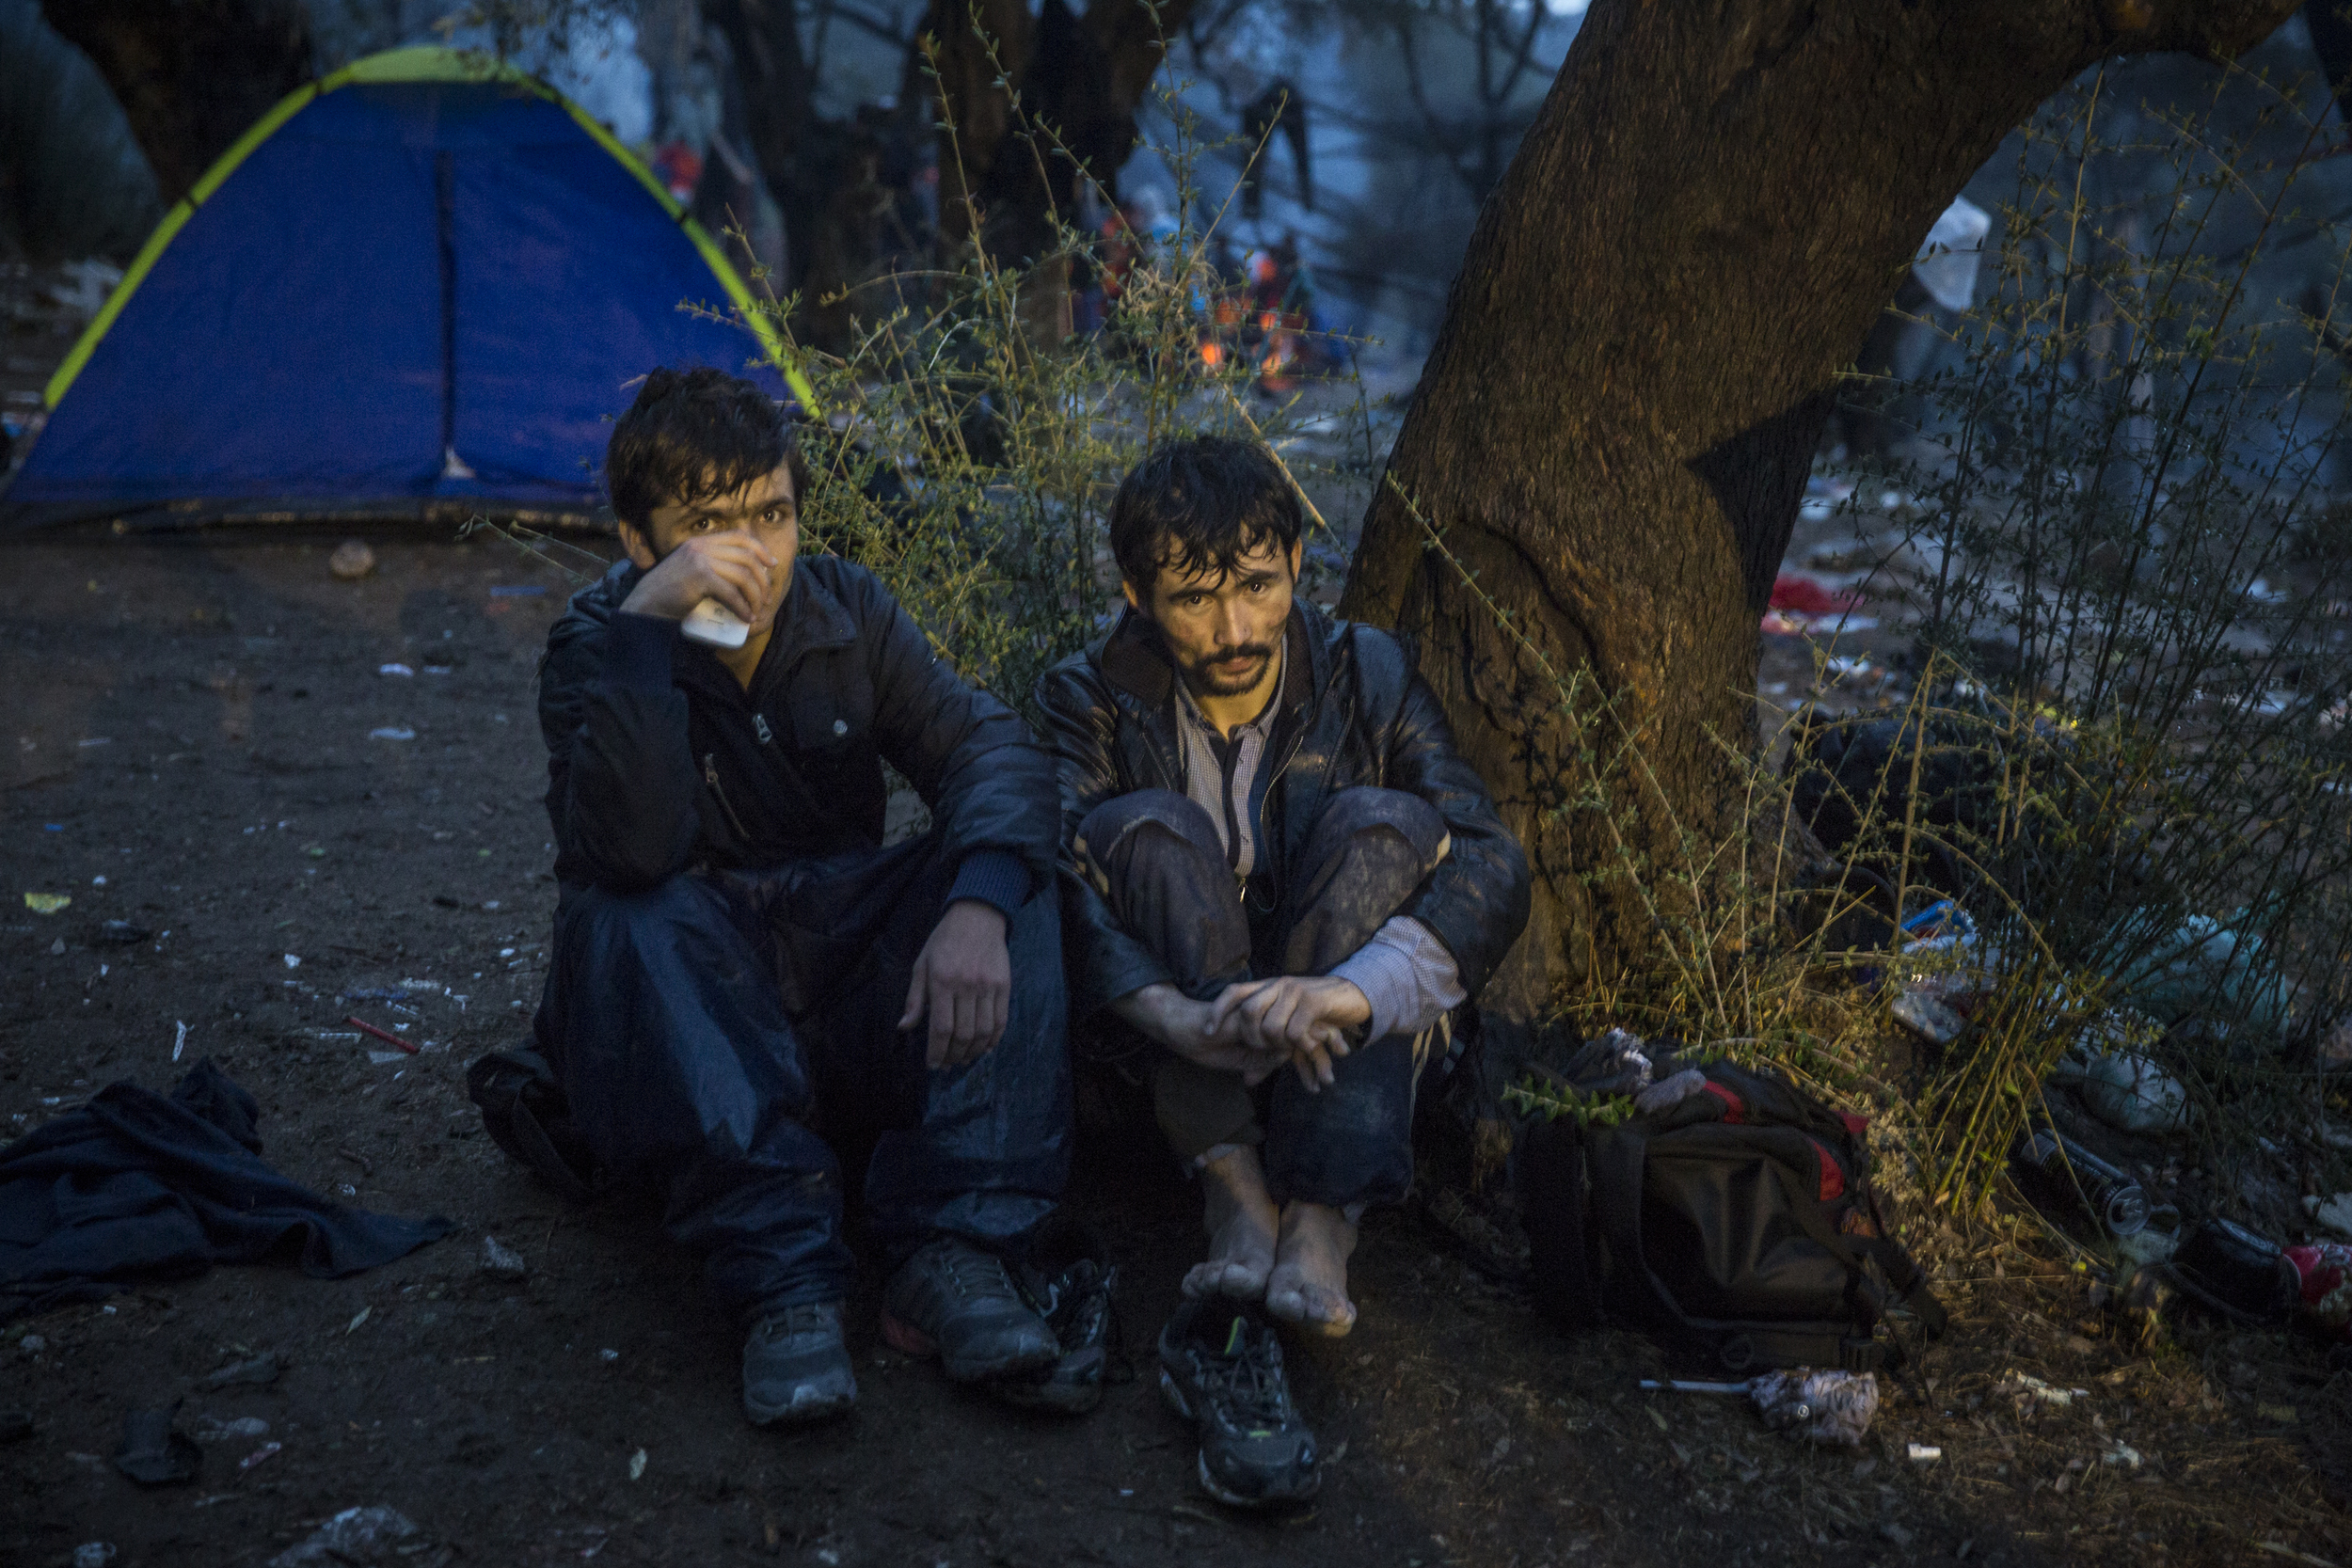 Two Afghan refugees camp in the rain outside Moria